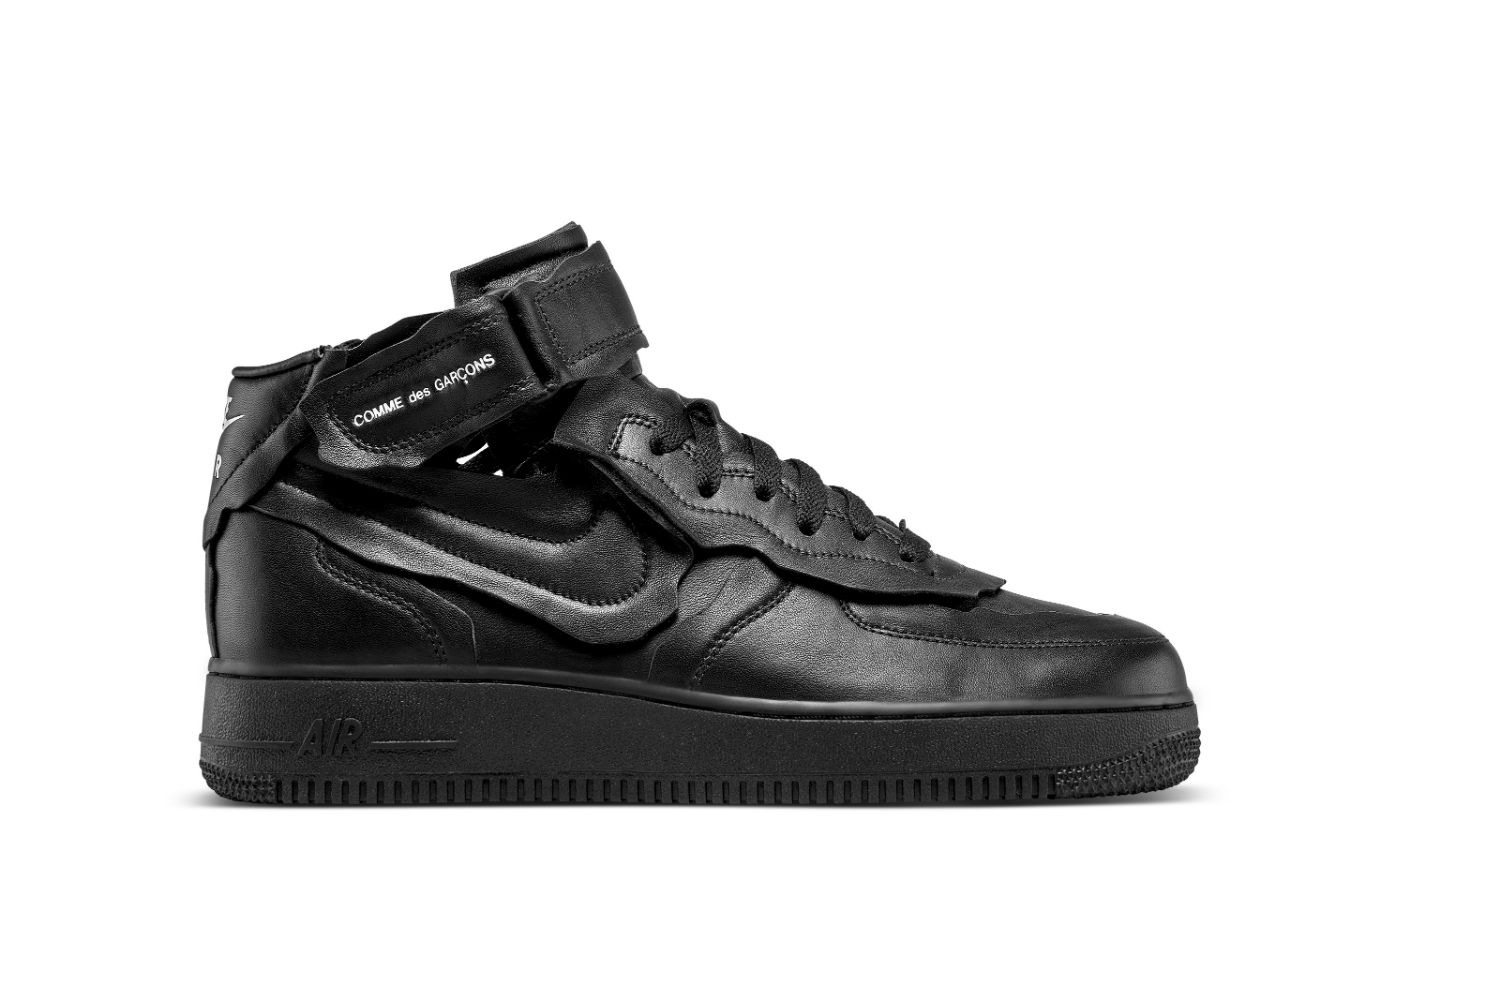 Nike and Comme Des Garcons Return With the Air Force 1 Mid